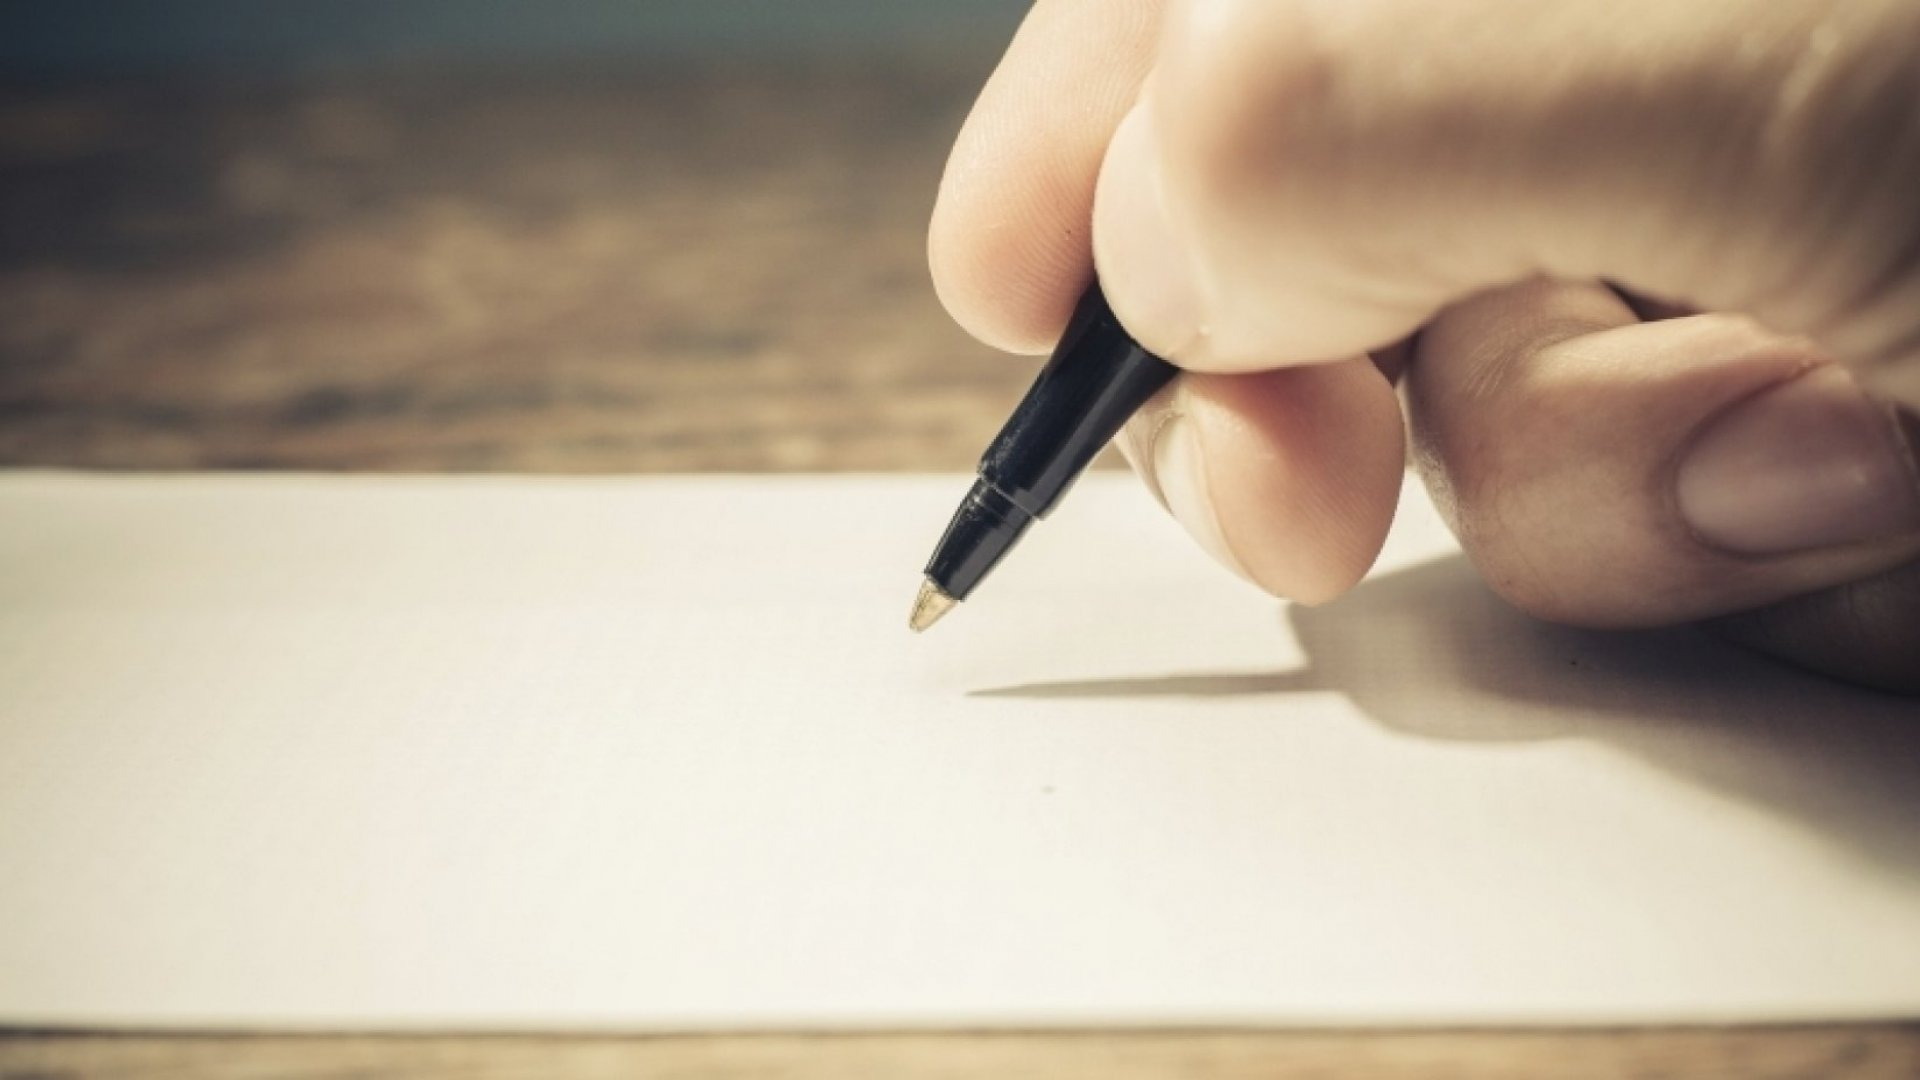 A Super Simple, Science-Backed Trick to Improve Your Writing